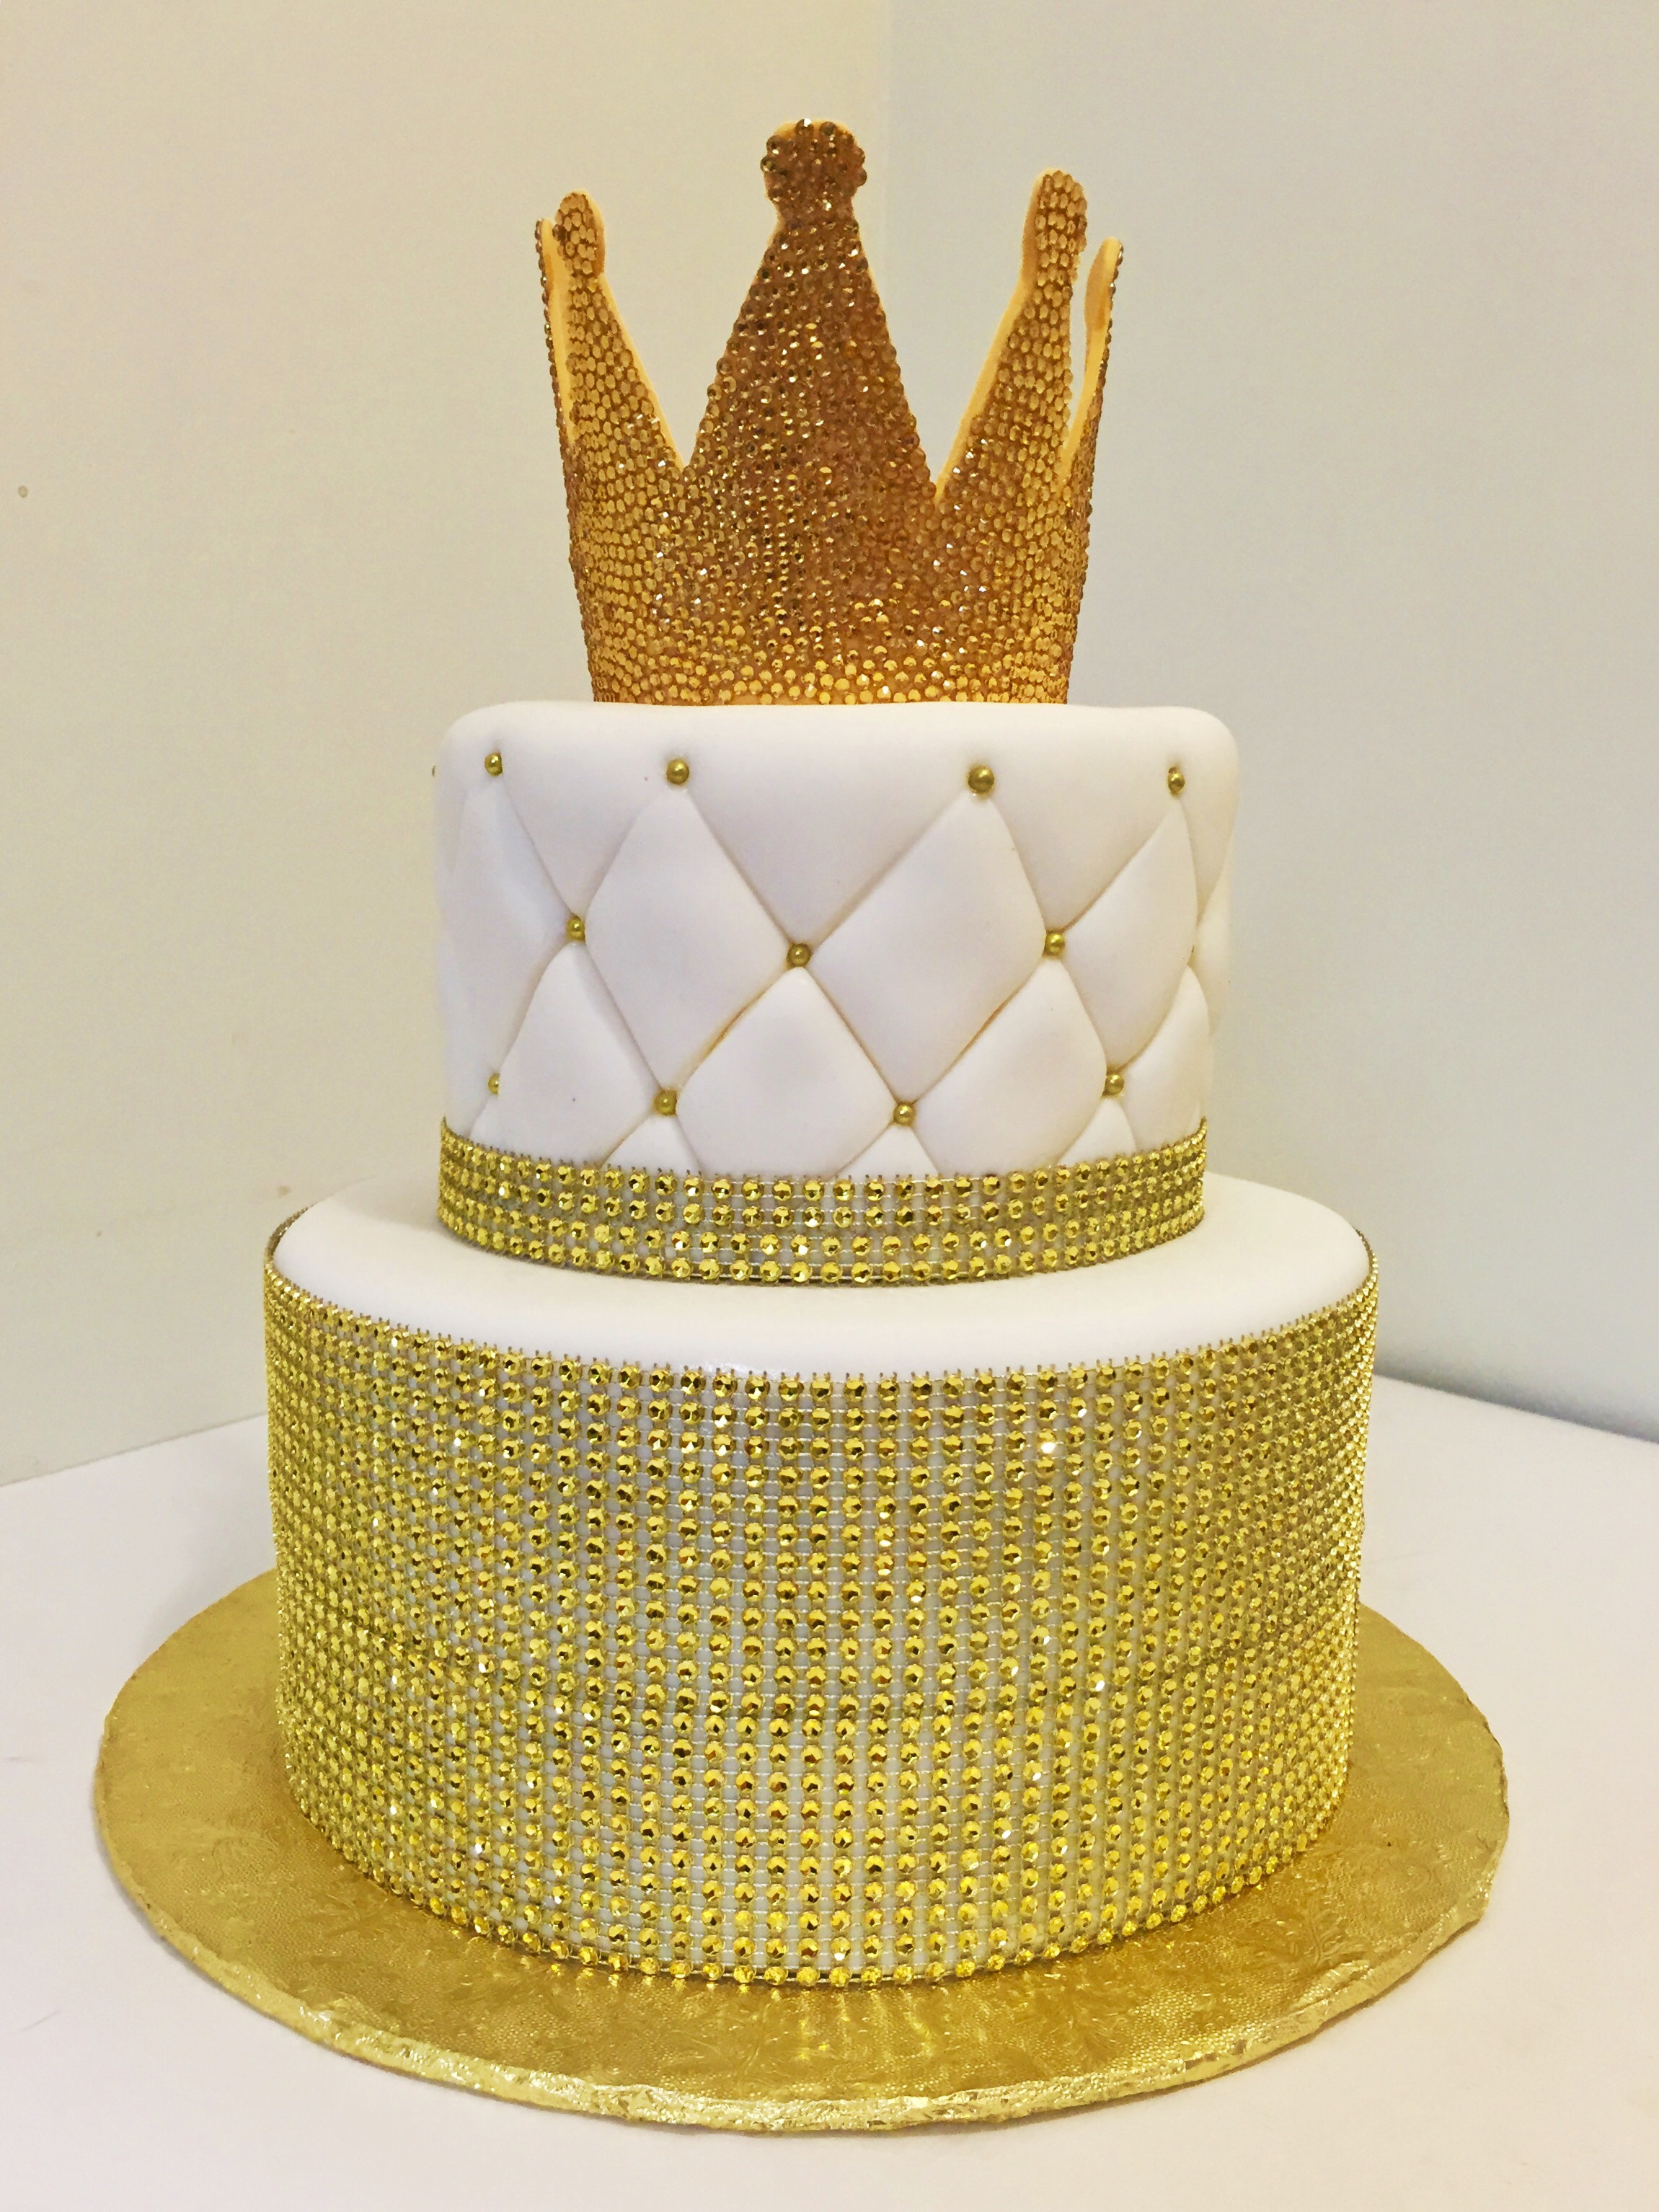 Best ideas about Glitter Birthday Cake . Save or Pin Owner of Masterpiece Bakery prepares for court battle in Now.